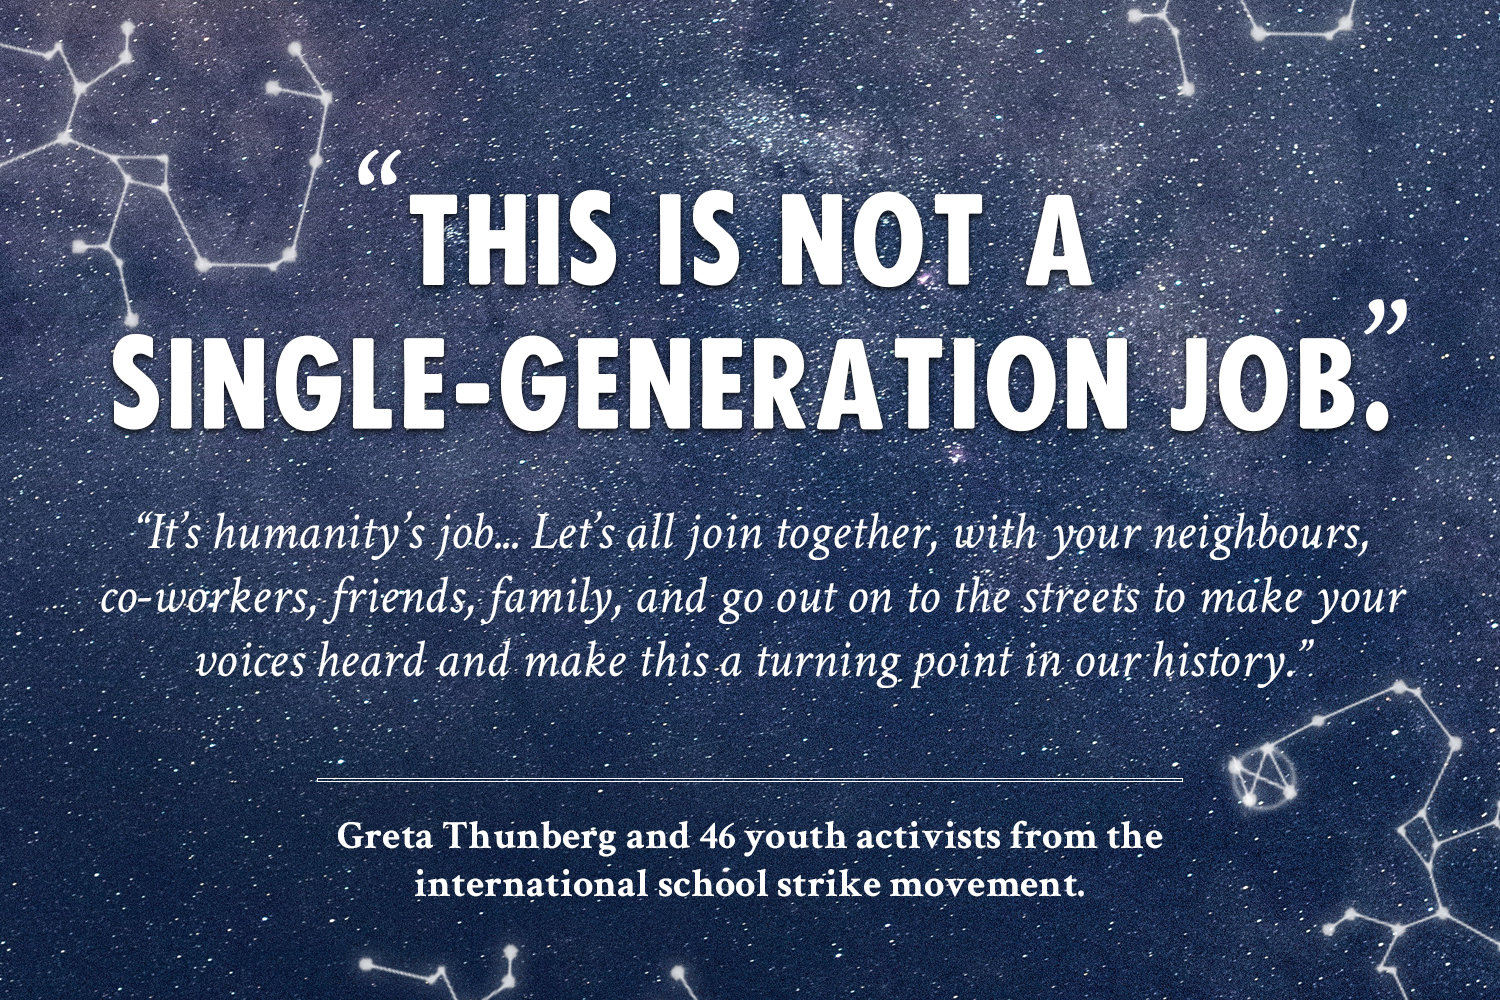 """This is not a single-generation job. It's humanity's job... Let's all join together, with your neighbours, co-workers, friends, family, and go out on to the streets to make your voices heard and make this a turning point in our history."" - Greta Thunberg and 46 youth activists from the international school strike movement."